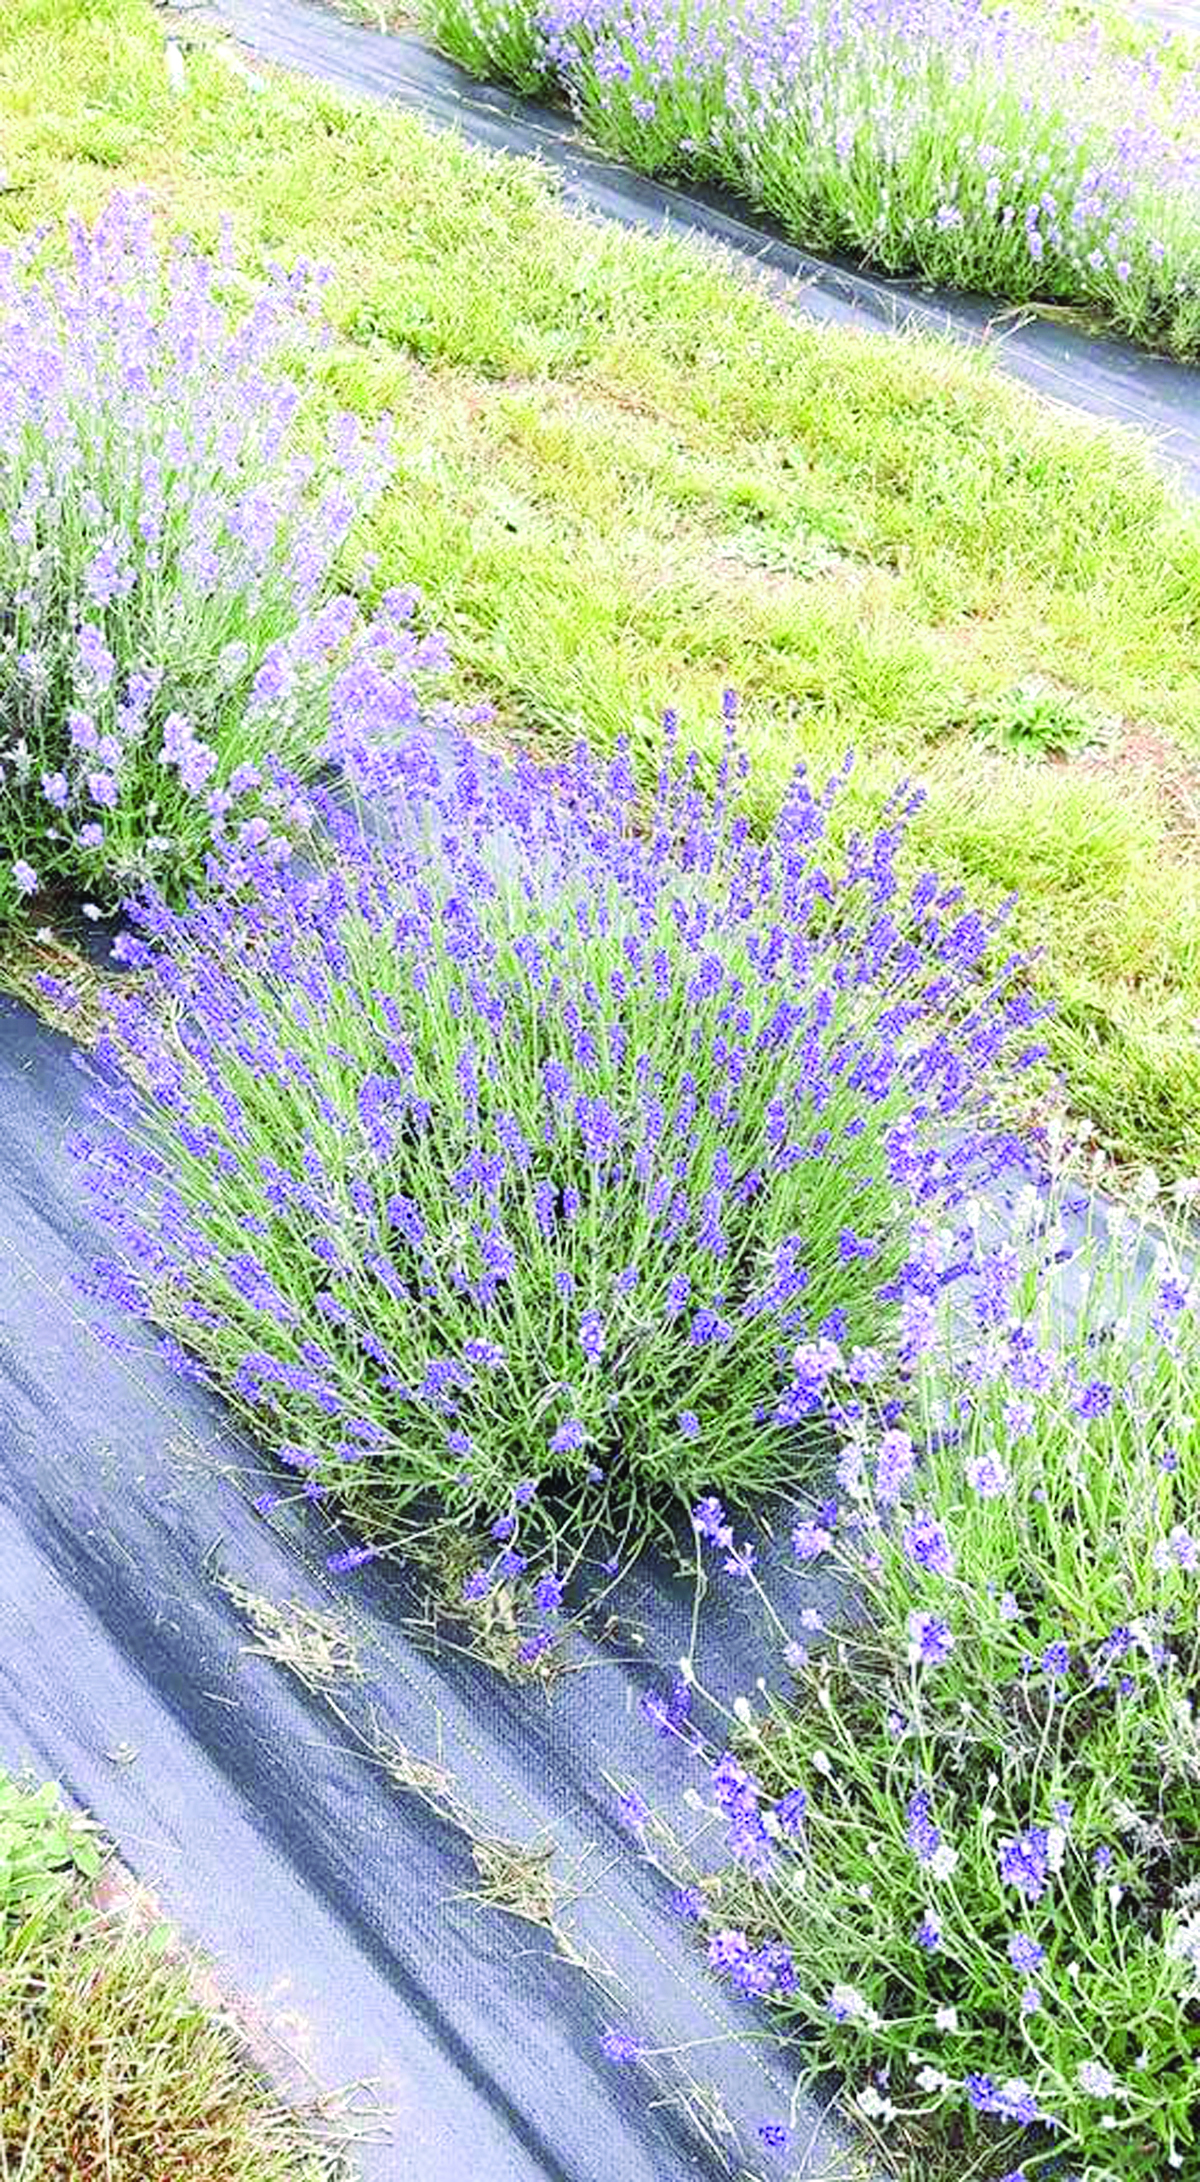 Weed barrier cloth is a low-maintenance option when growing lavender. (Submitted photo)